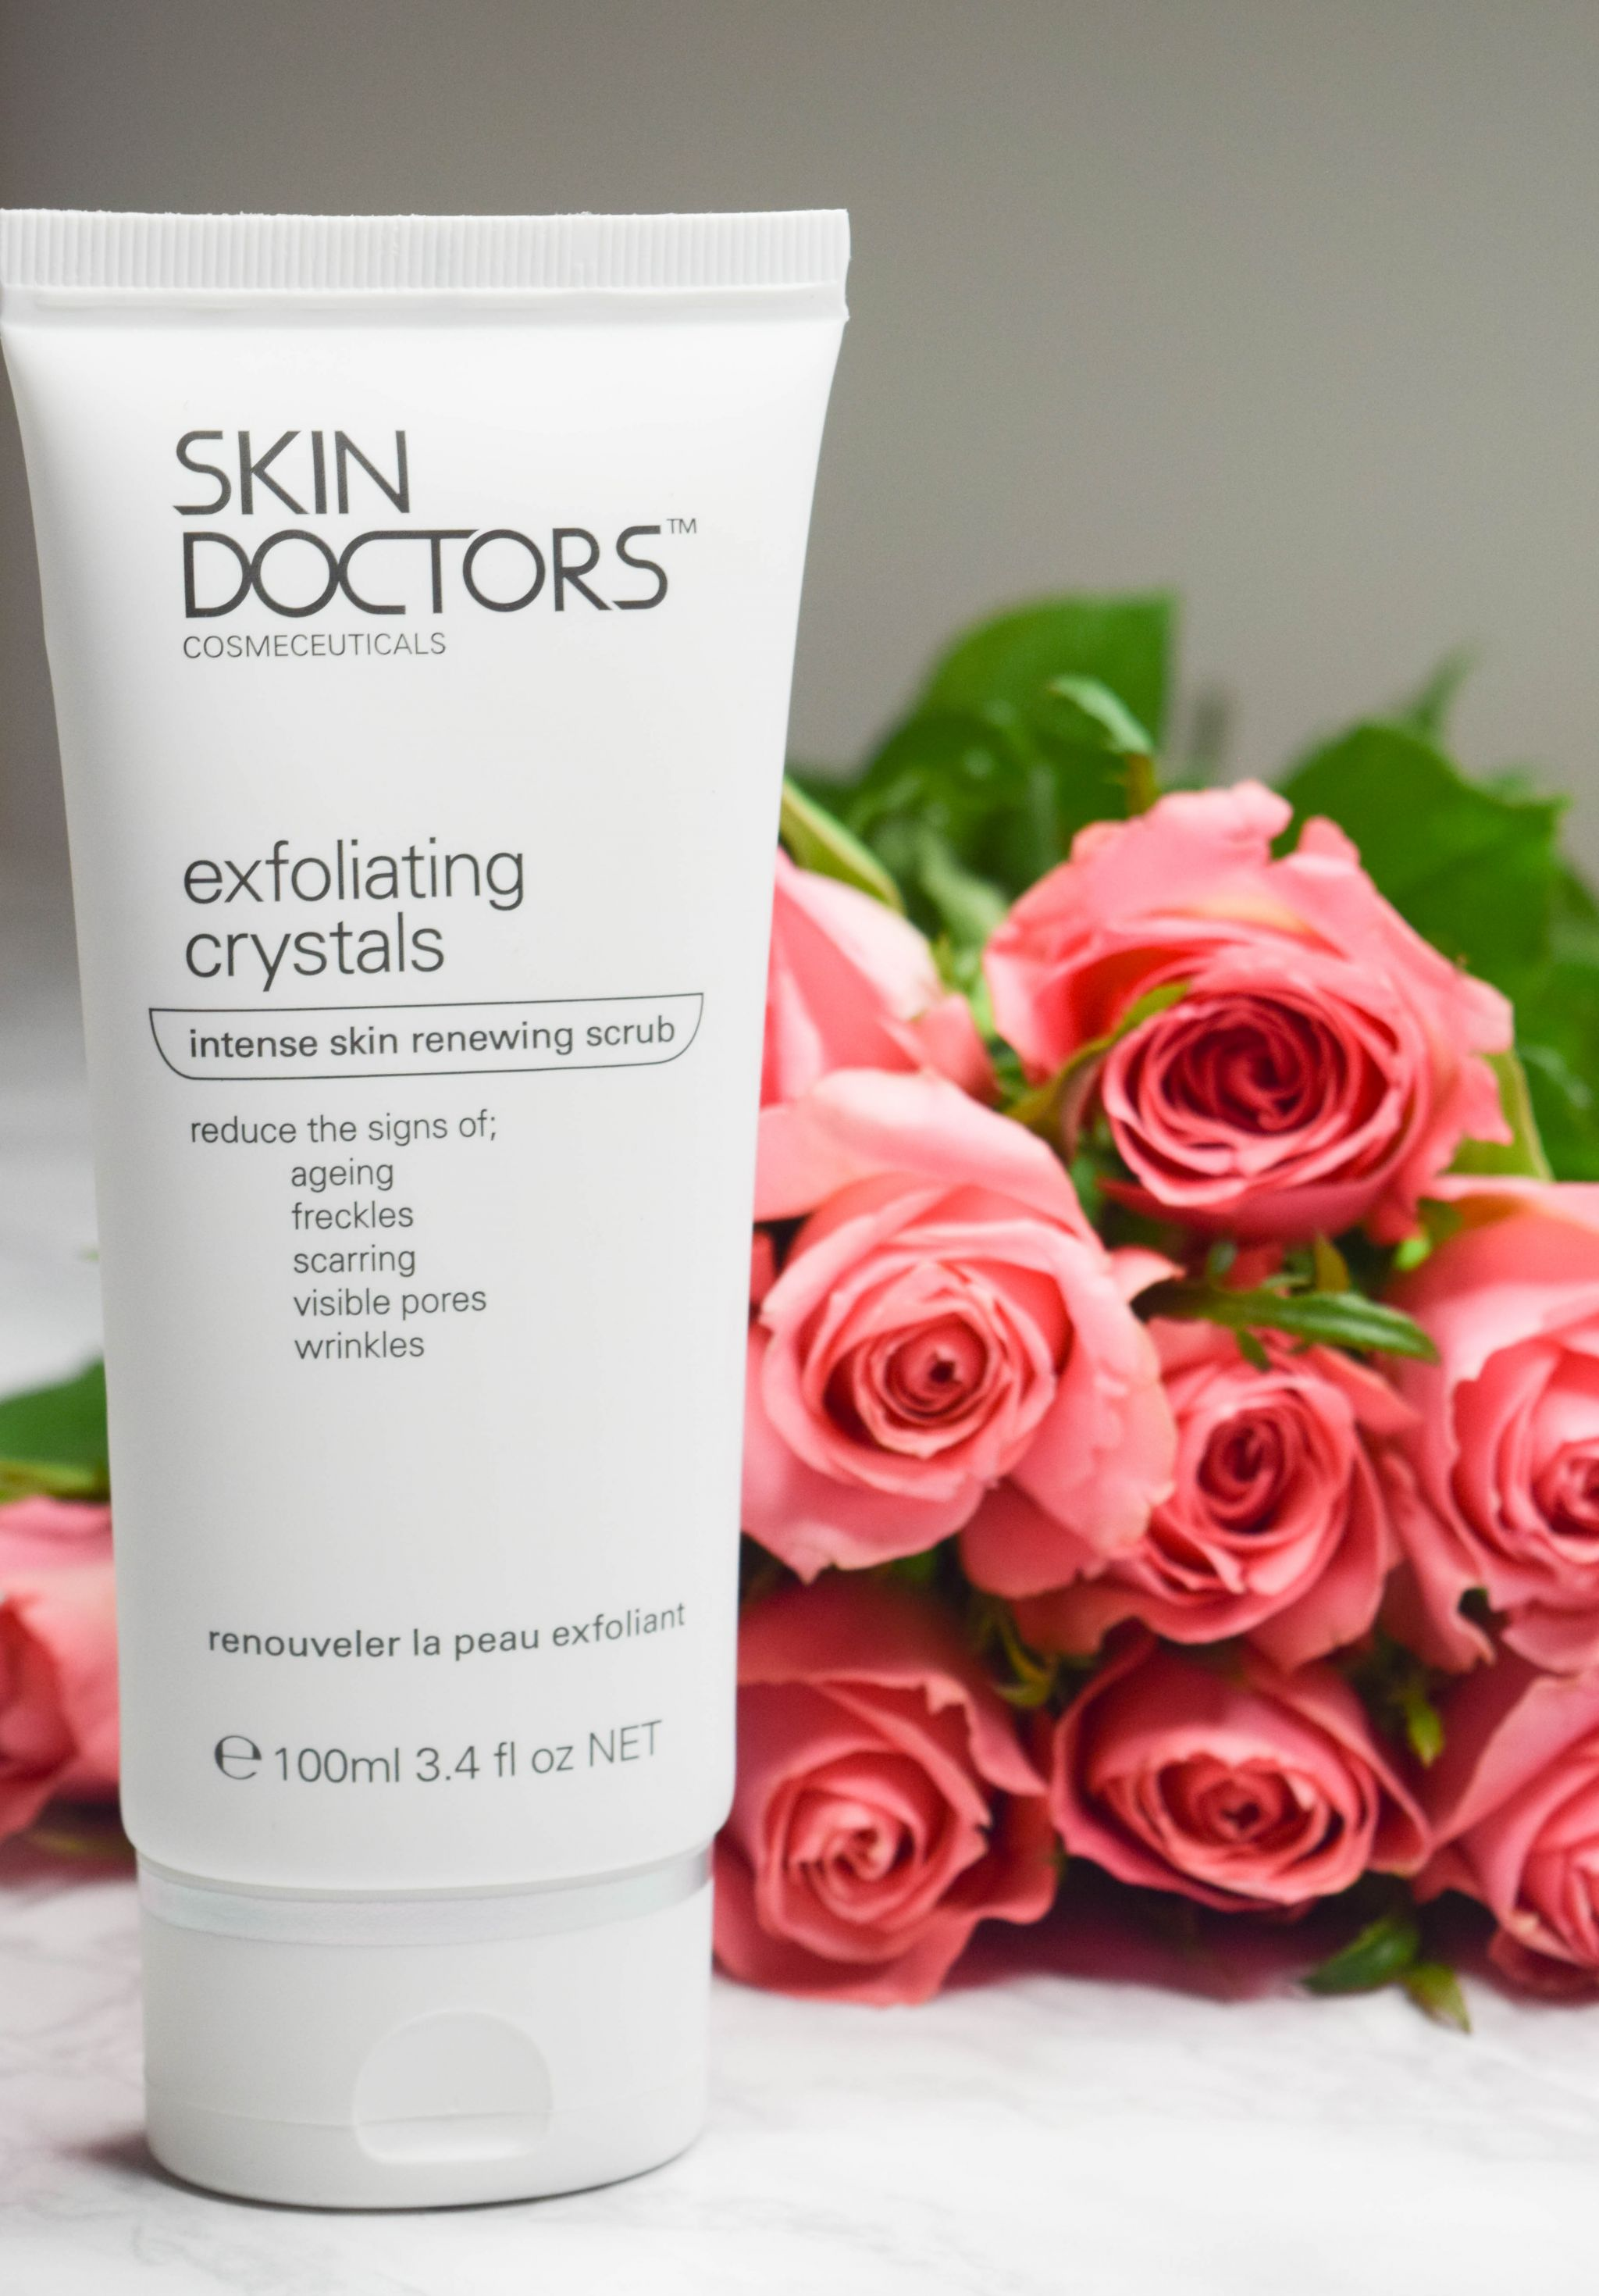 Skin Doctors Exfoliating Crystals* - The Luxe List